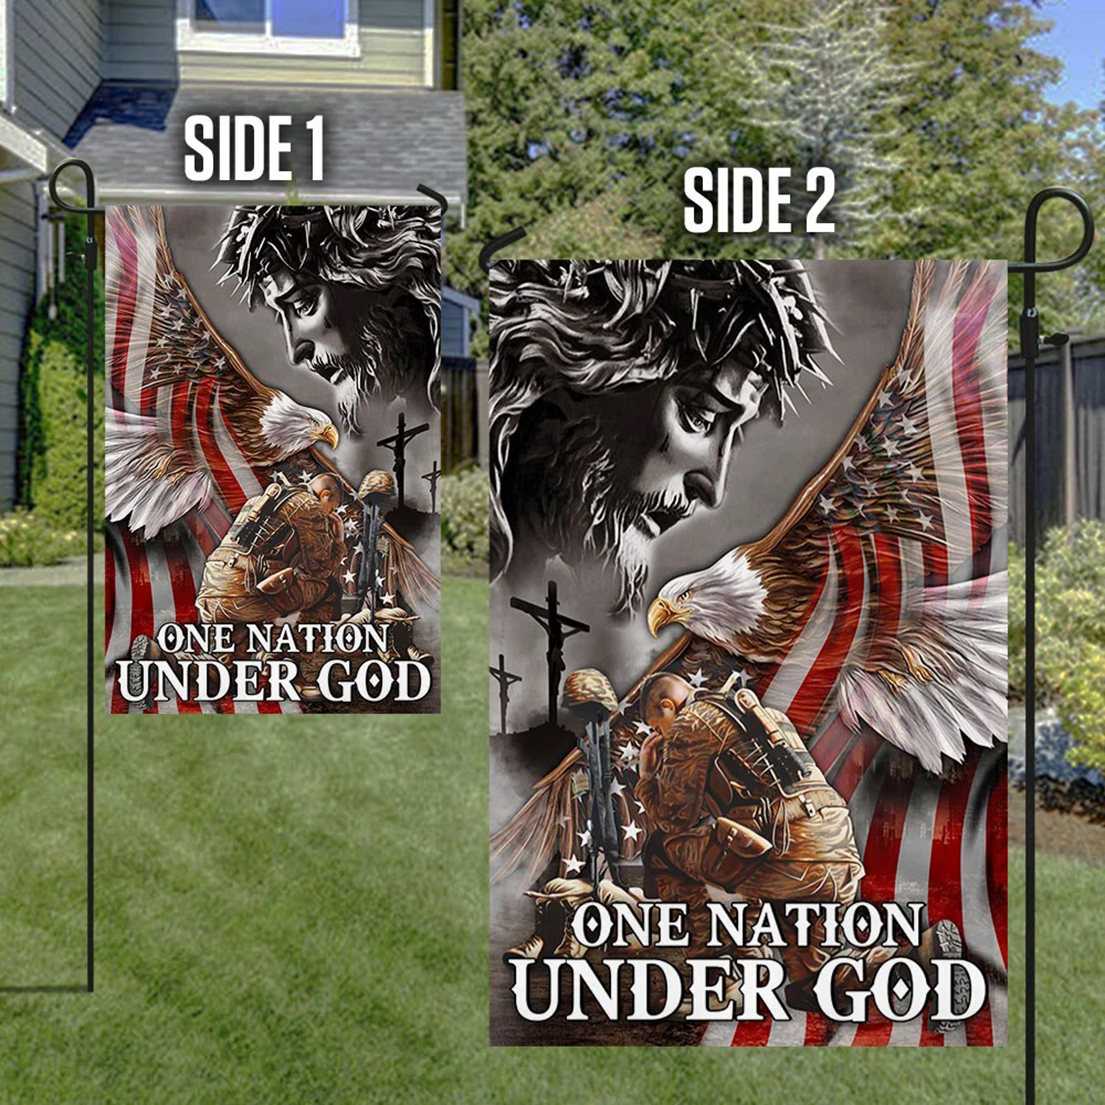 Veteran One nation under god eagle American flag - Picture 1